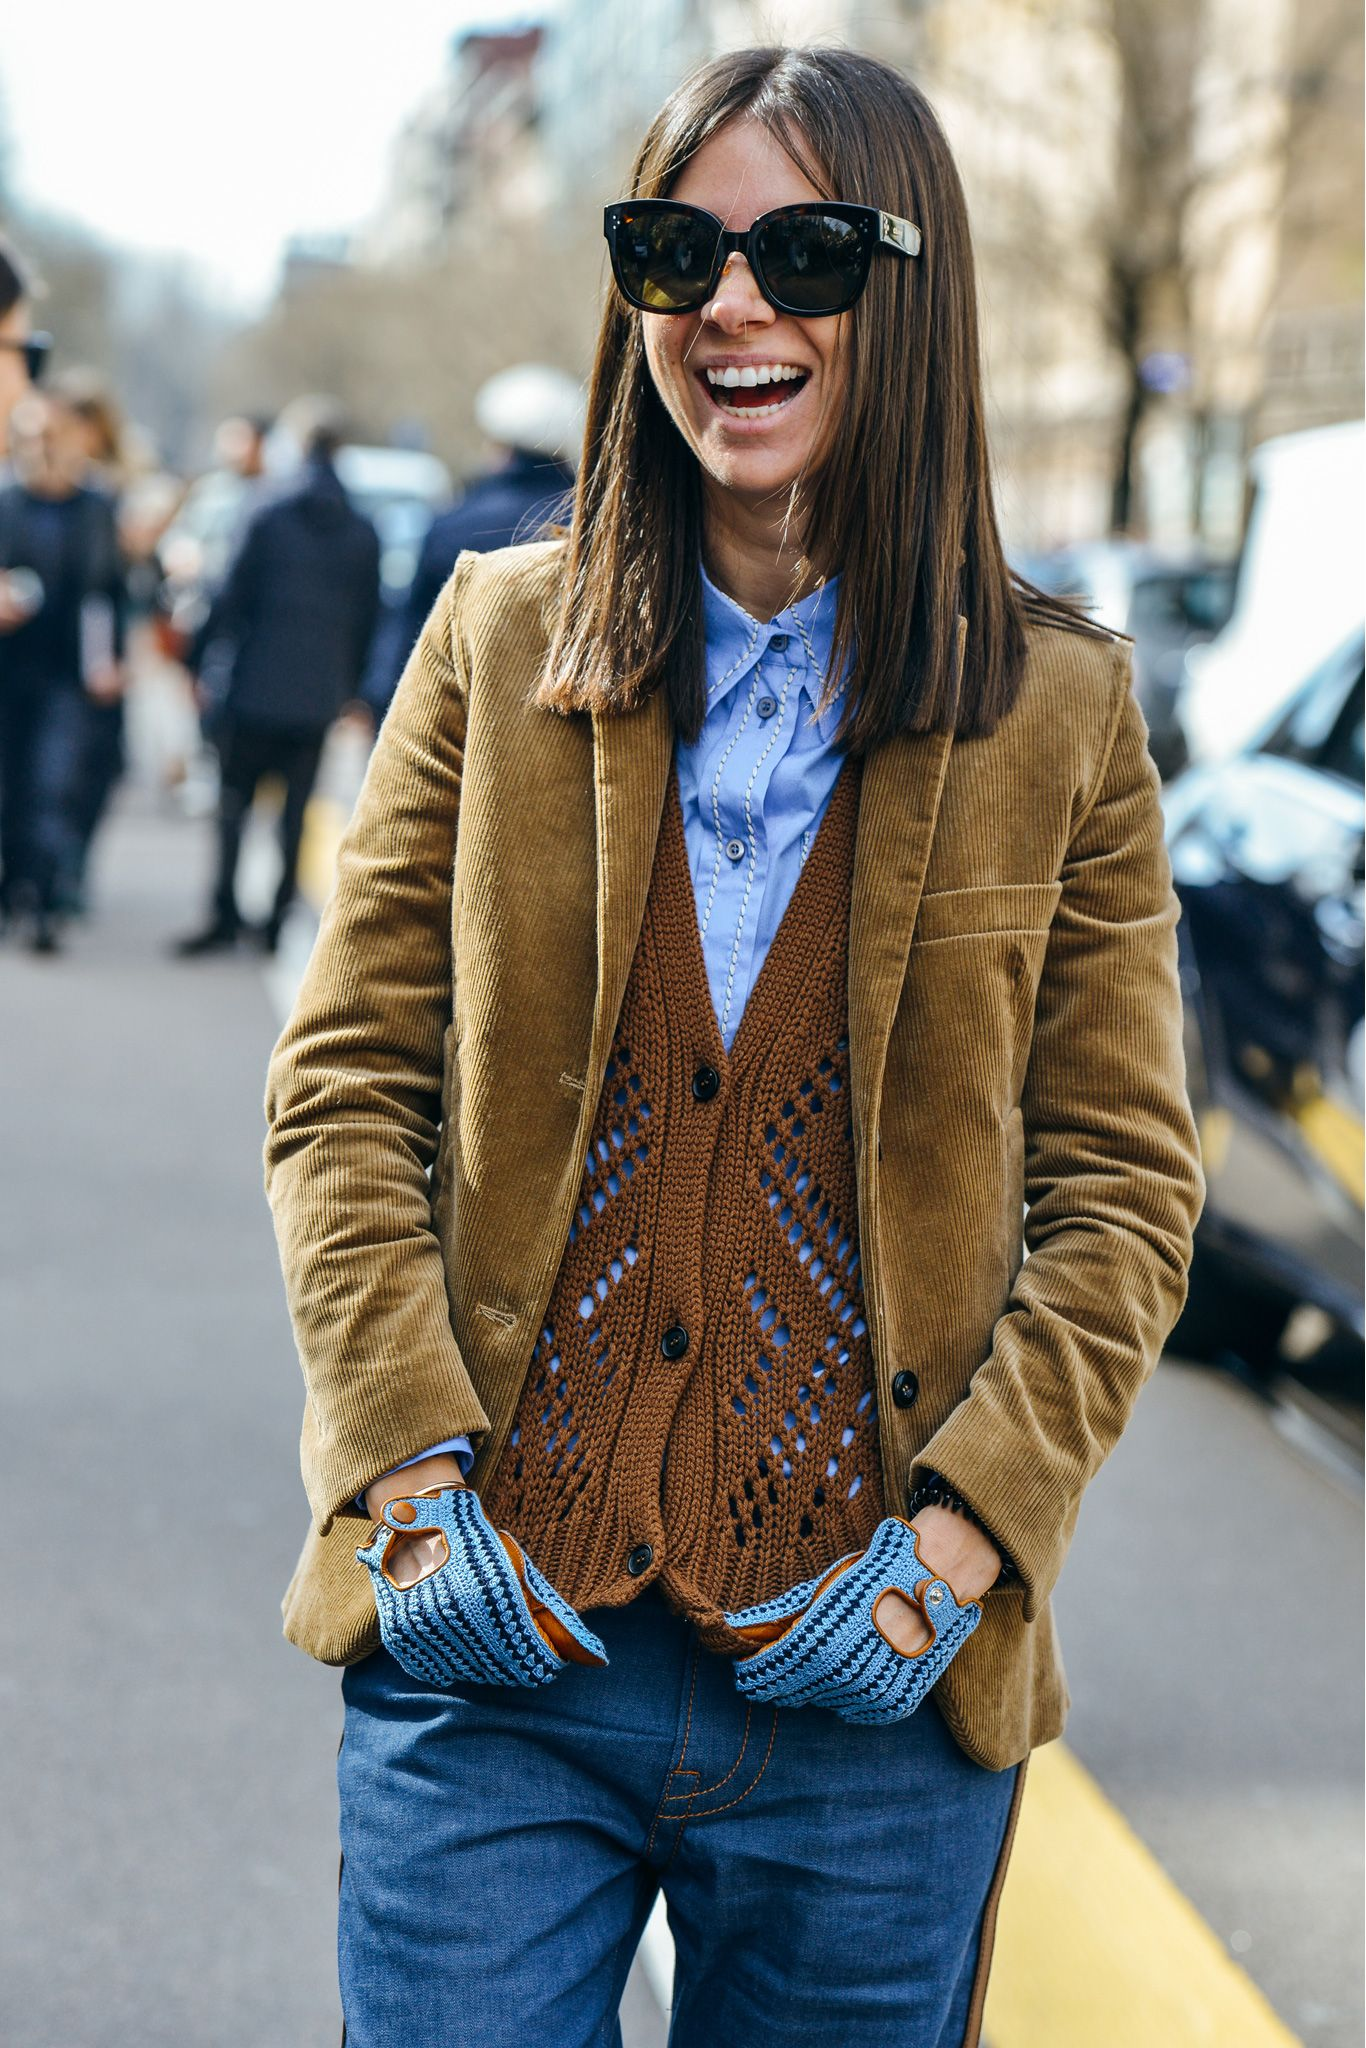 Style Spy: Weekend Style recommend